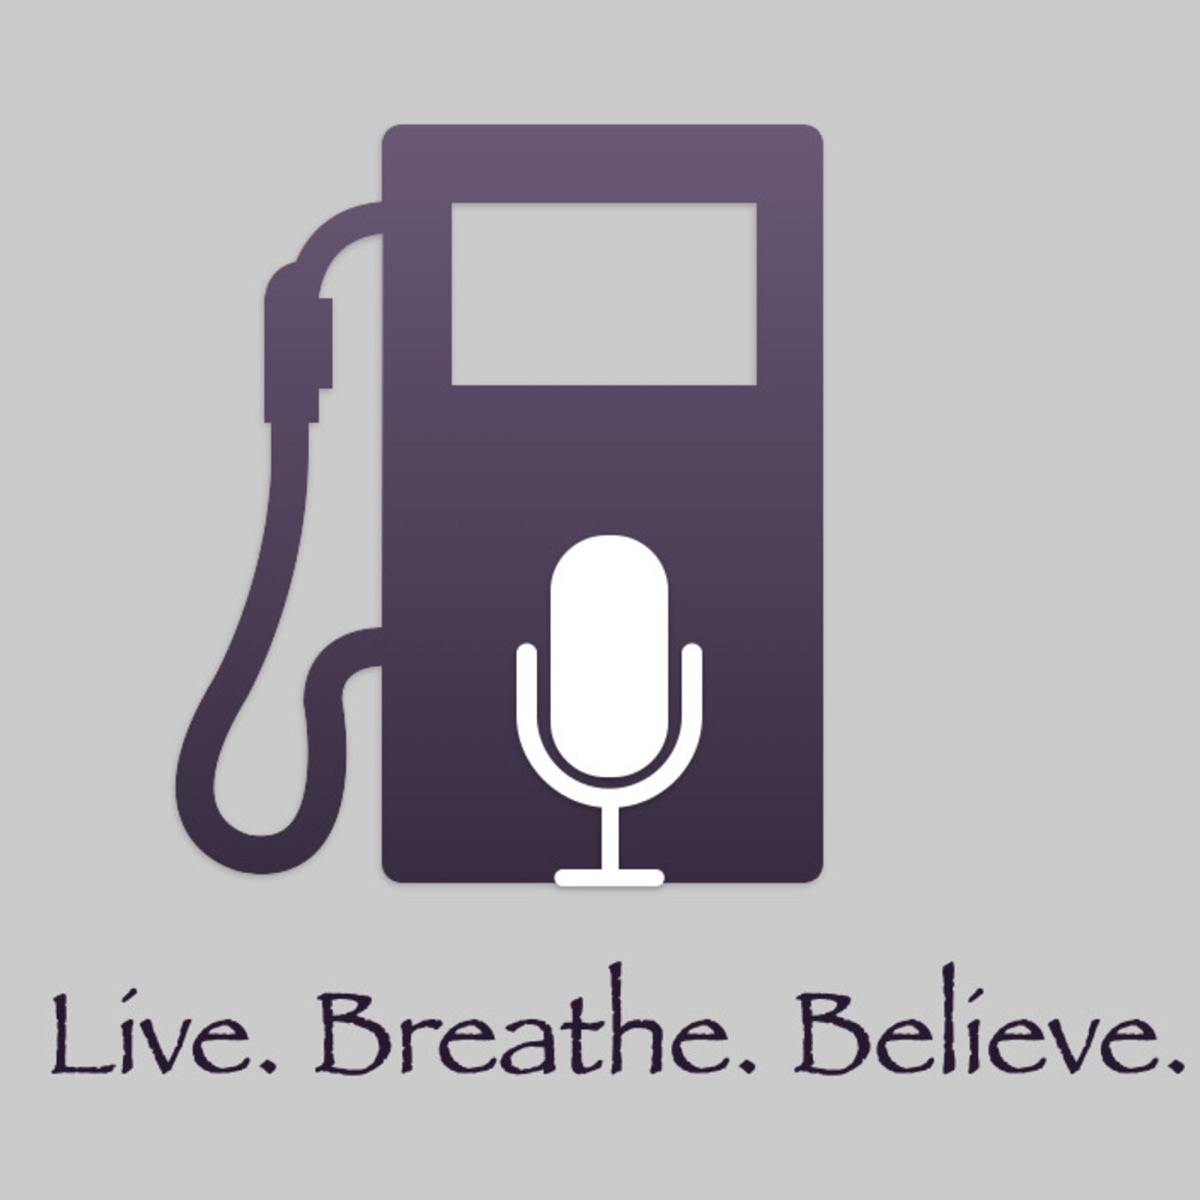 Live. Breathe. Believe.